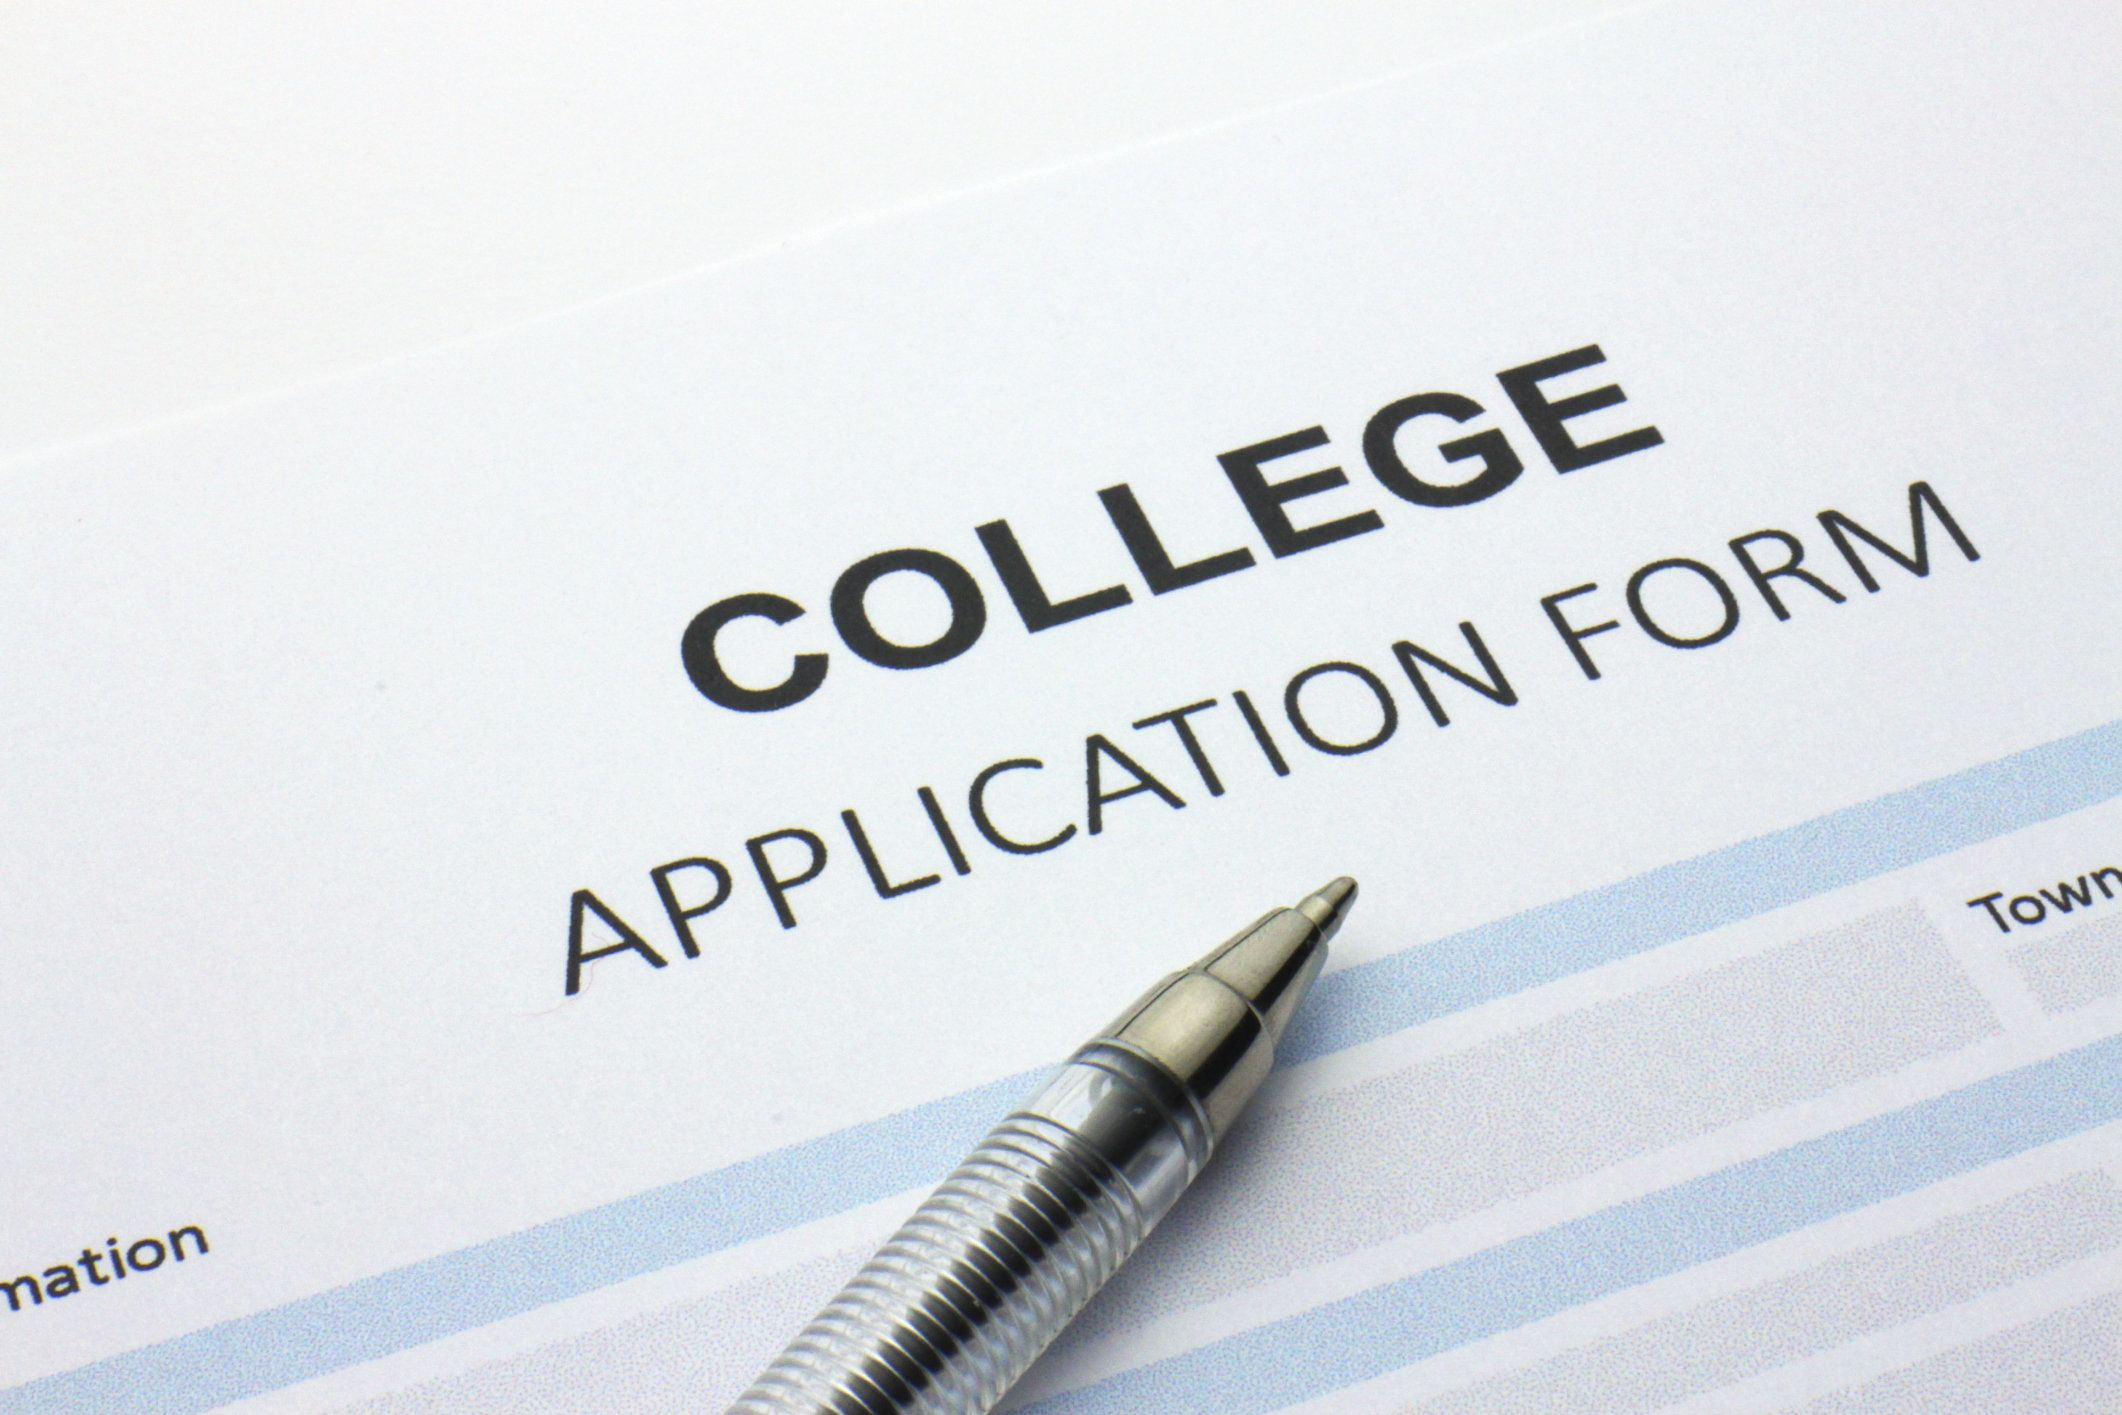 A blank college application form with pen resting across it.